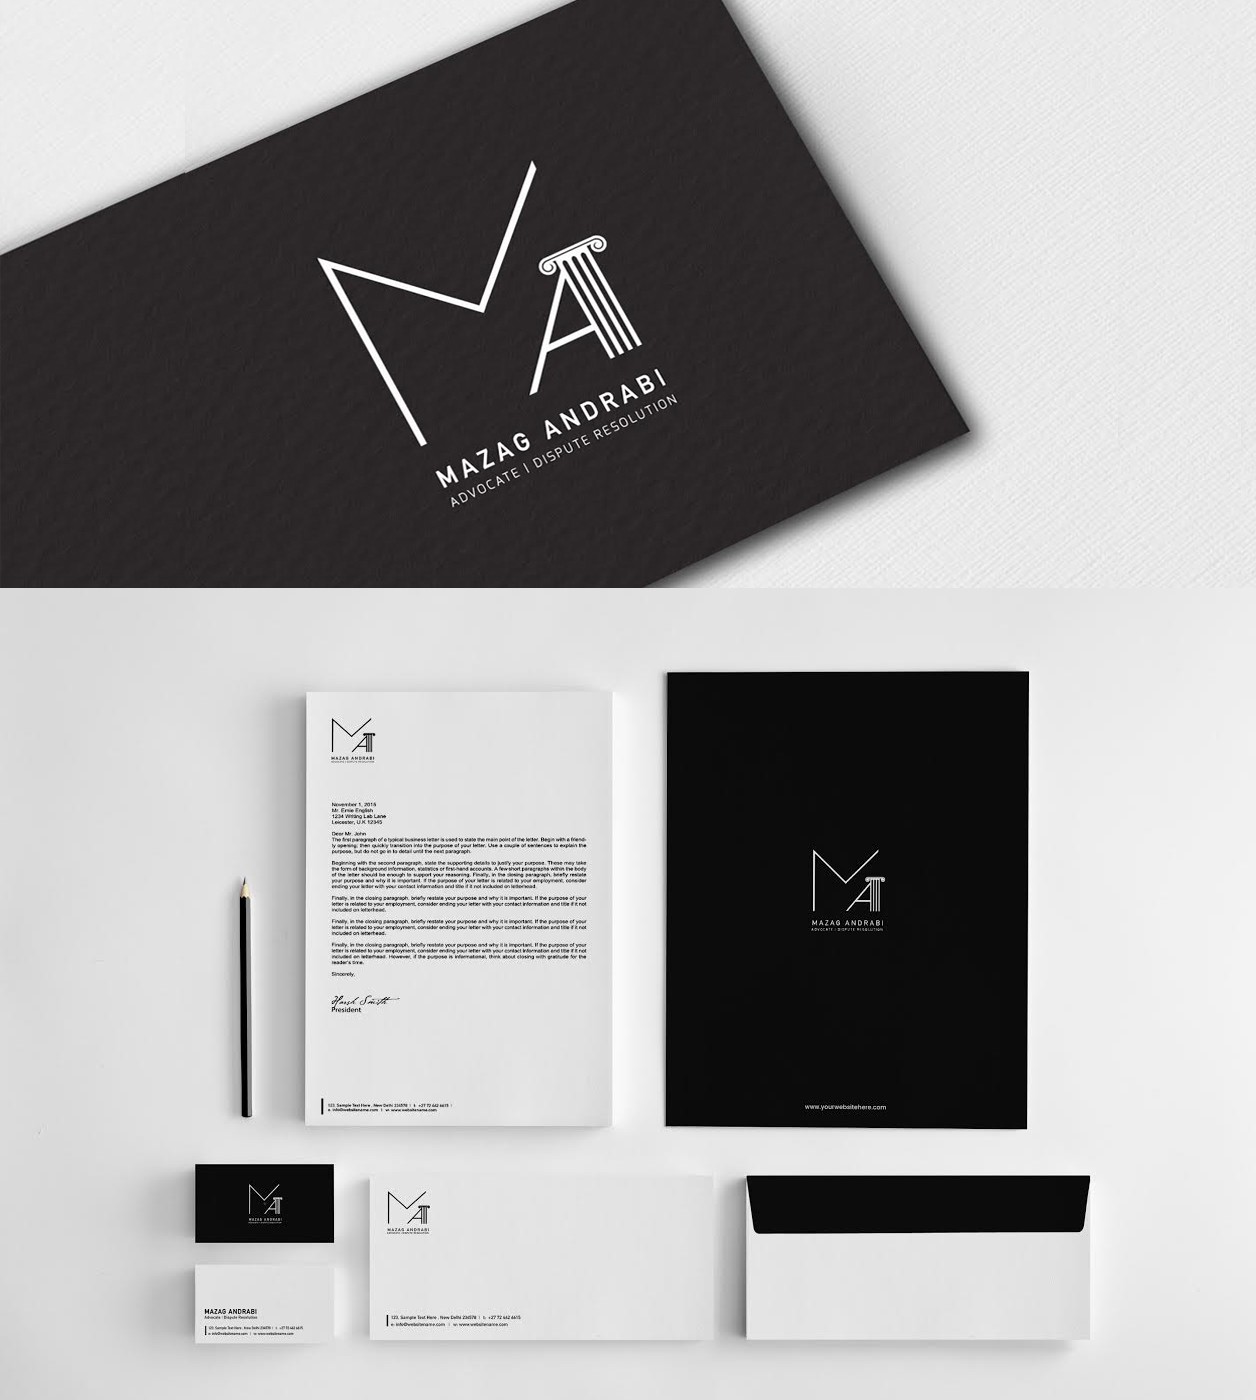 Minimal Monochrome Design